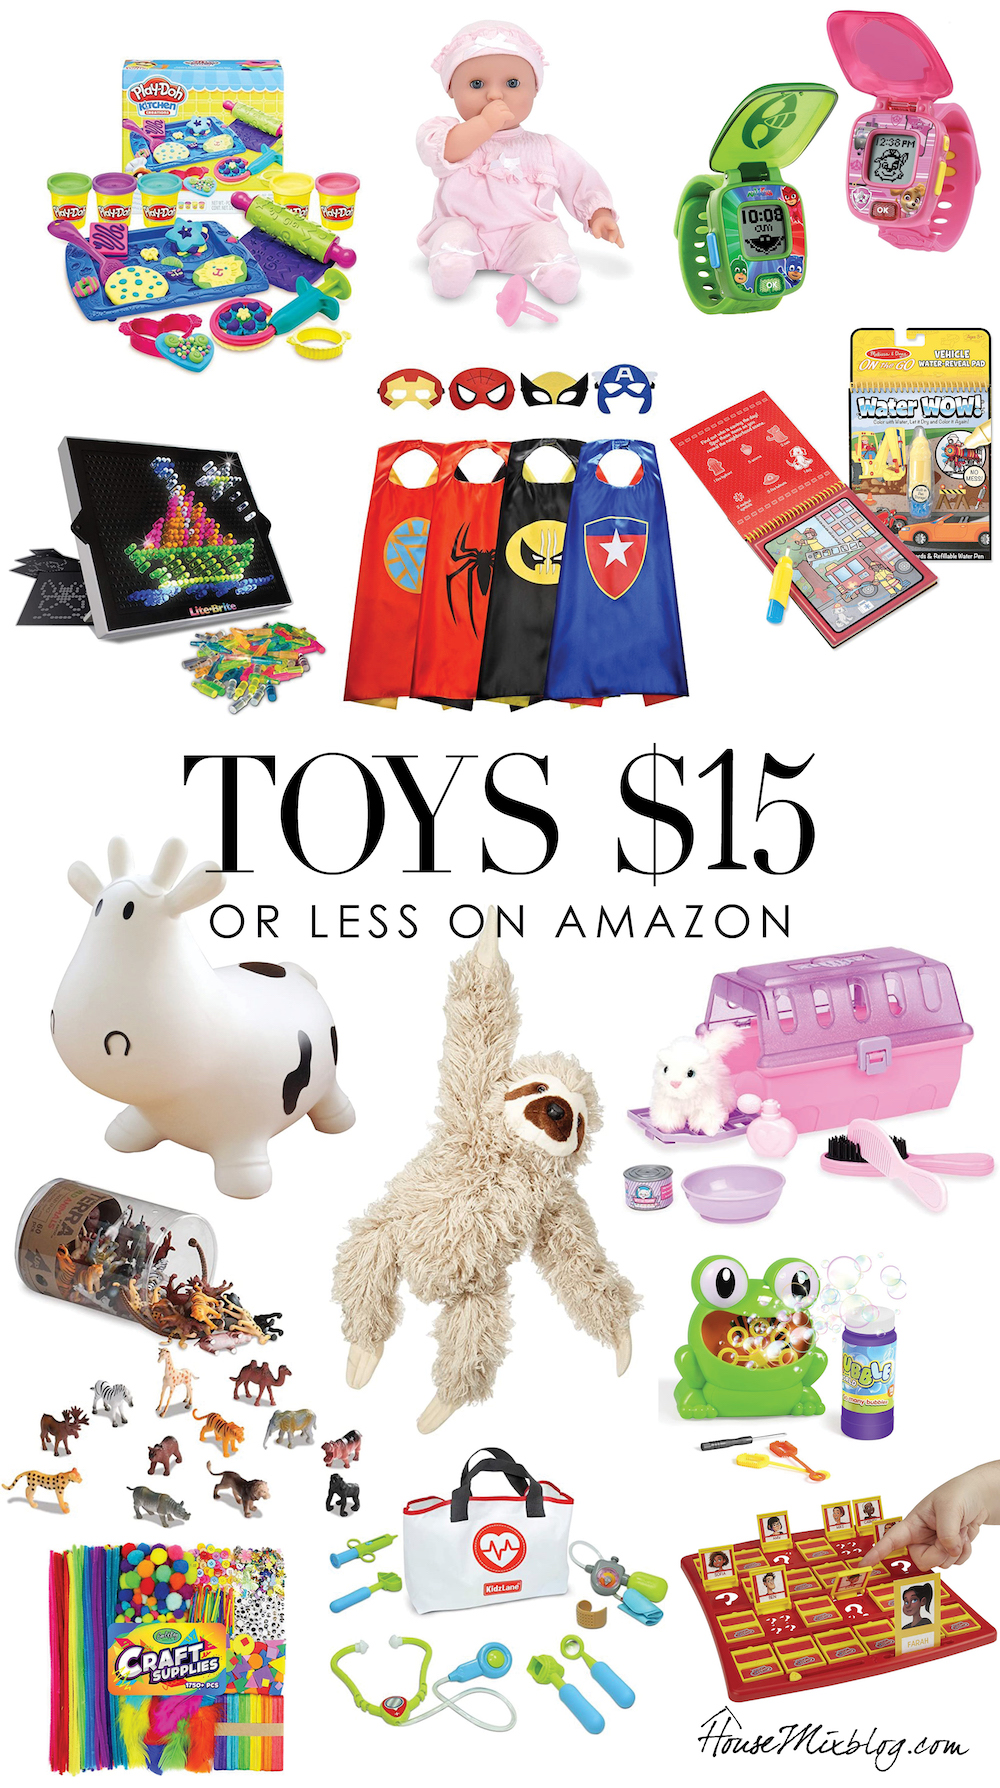 Gift guide for kids for Christmas or birthday - $15 or less on Amazon - inexpensive cheap budget toy ideas for boys and girls